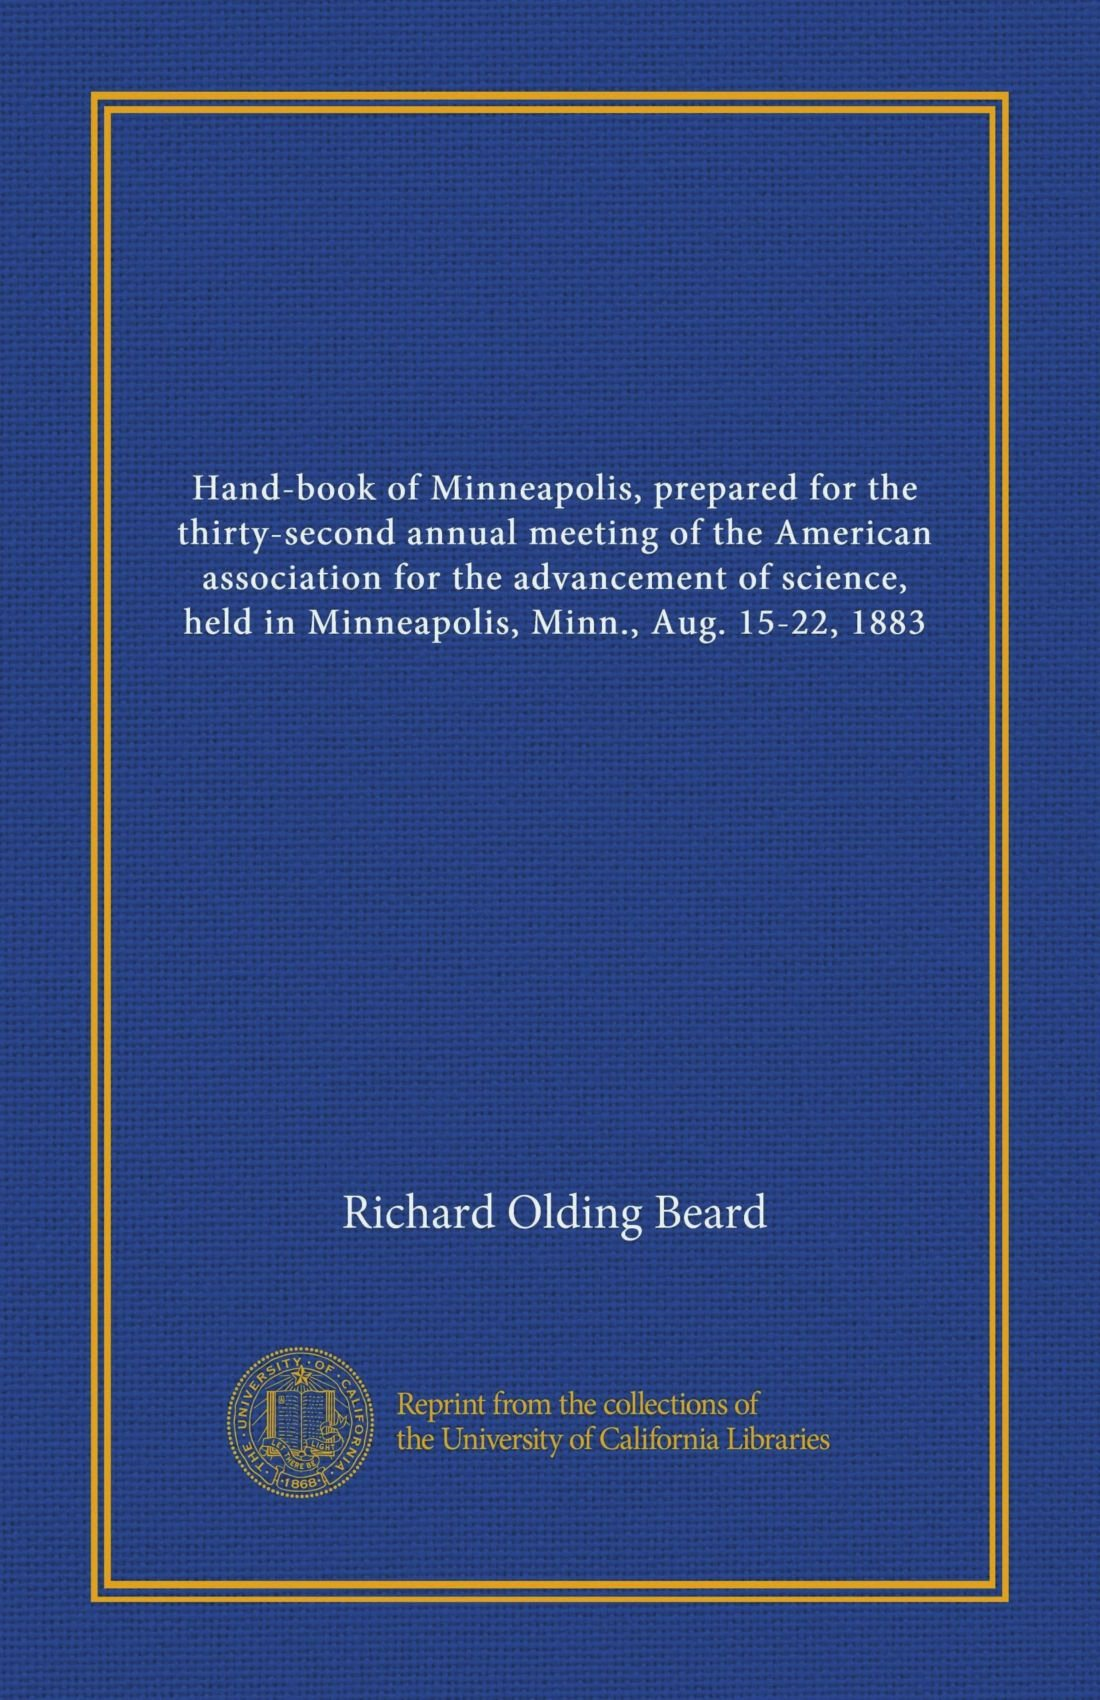 Hand-book of Minneapolis, prepared for the thirty-second annual meeting of the American association for the advancement of science, held in Minneapolis, Minn., Aug. 15-22, 1883 pdf epub